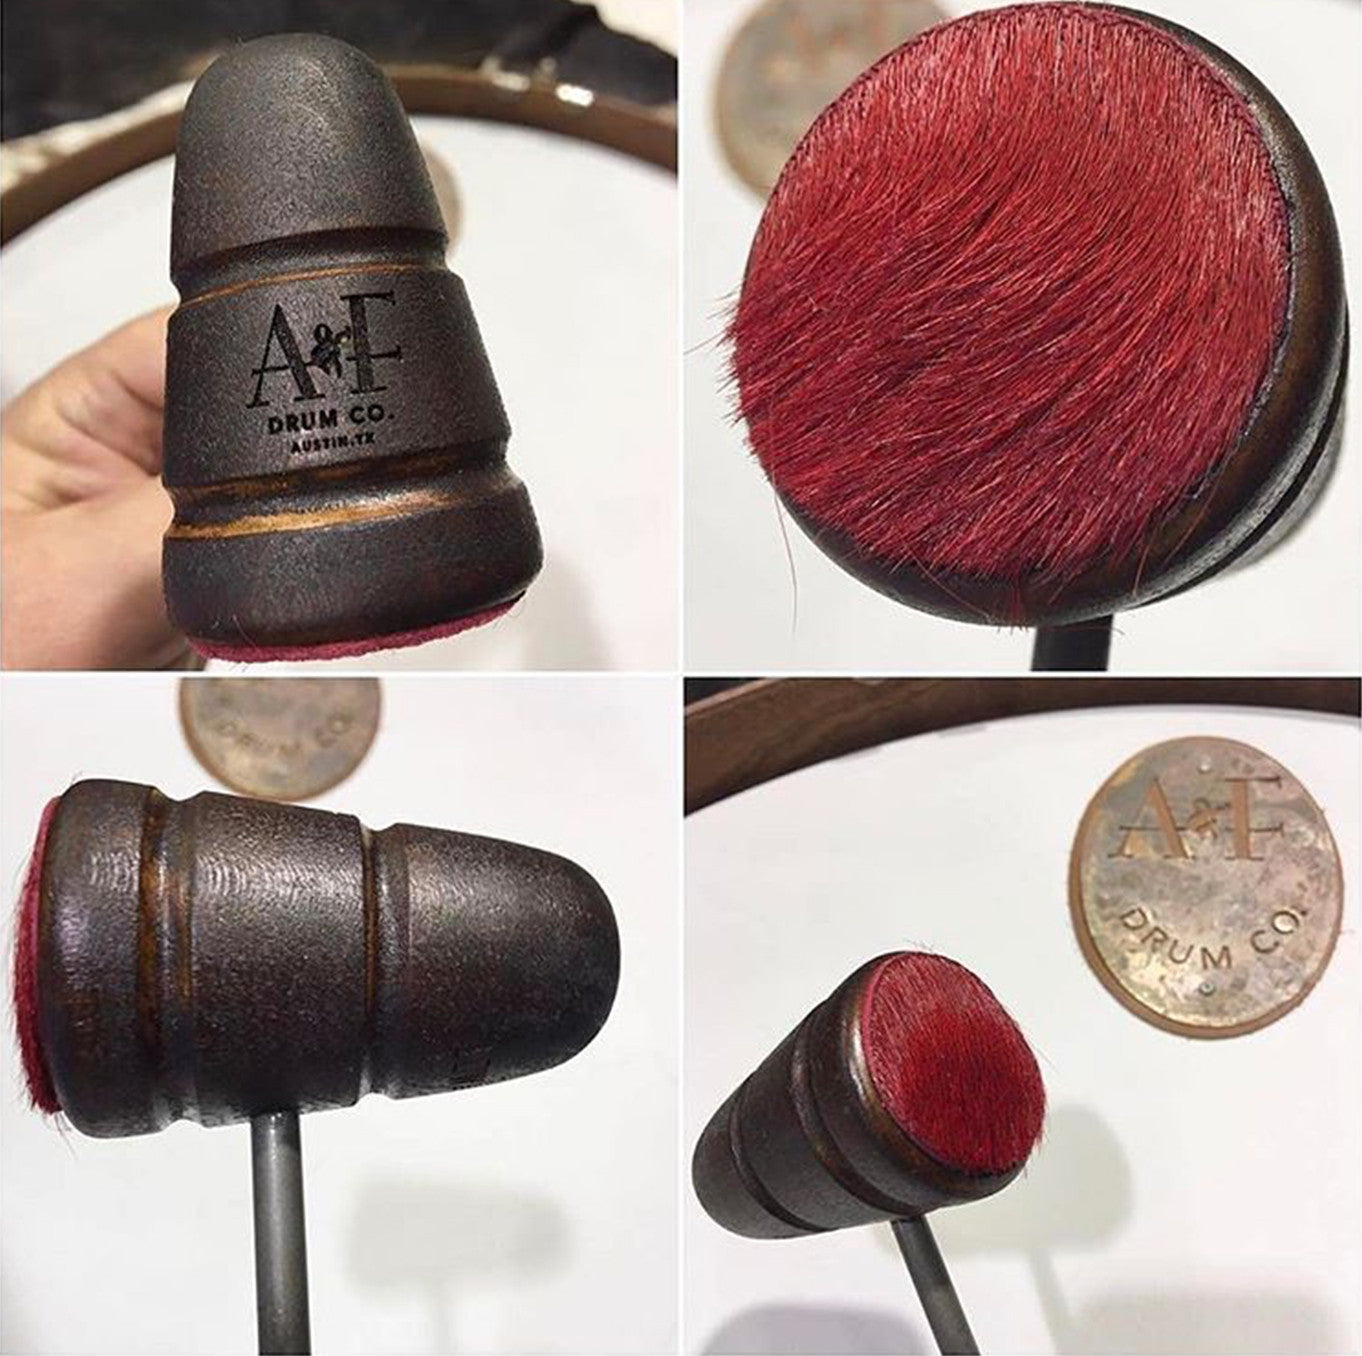 A&F Lowboy Beater - A&F Drum Co